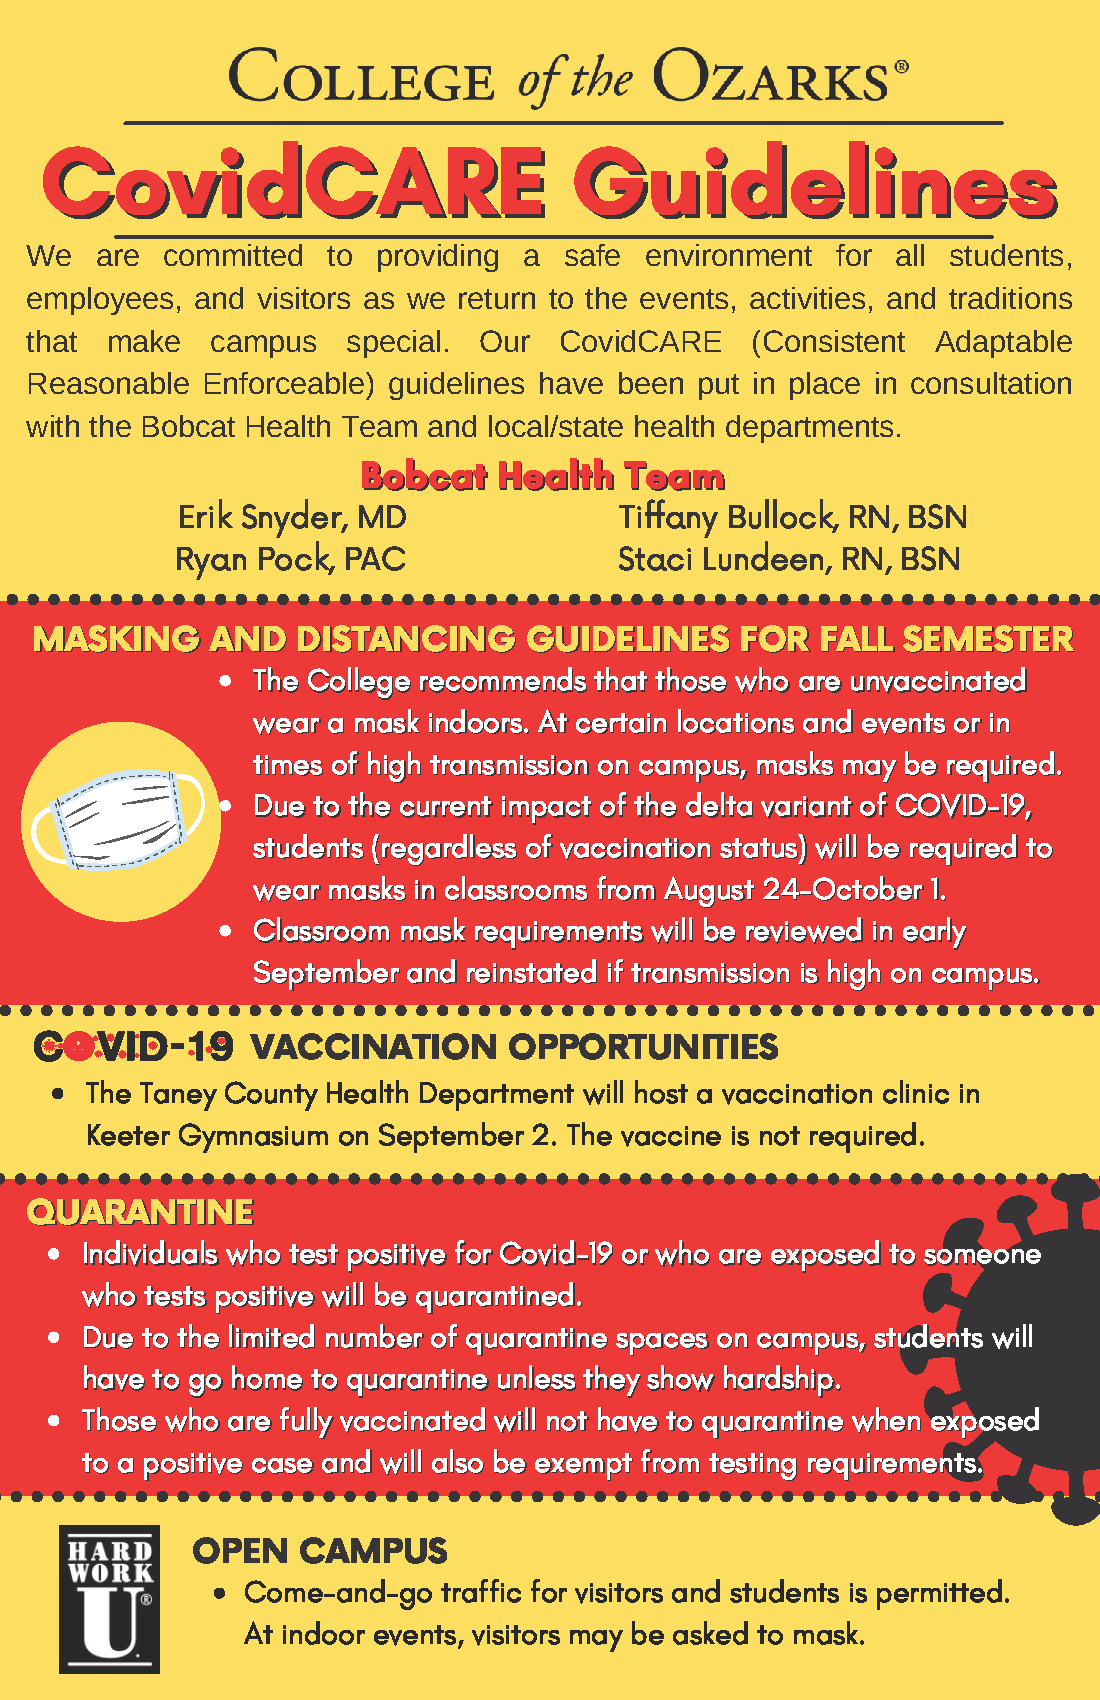 C of O CovidCARE Guidelines